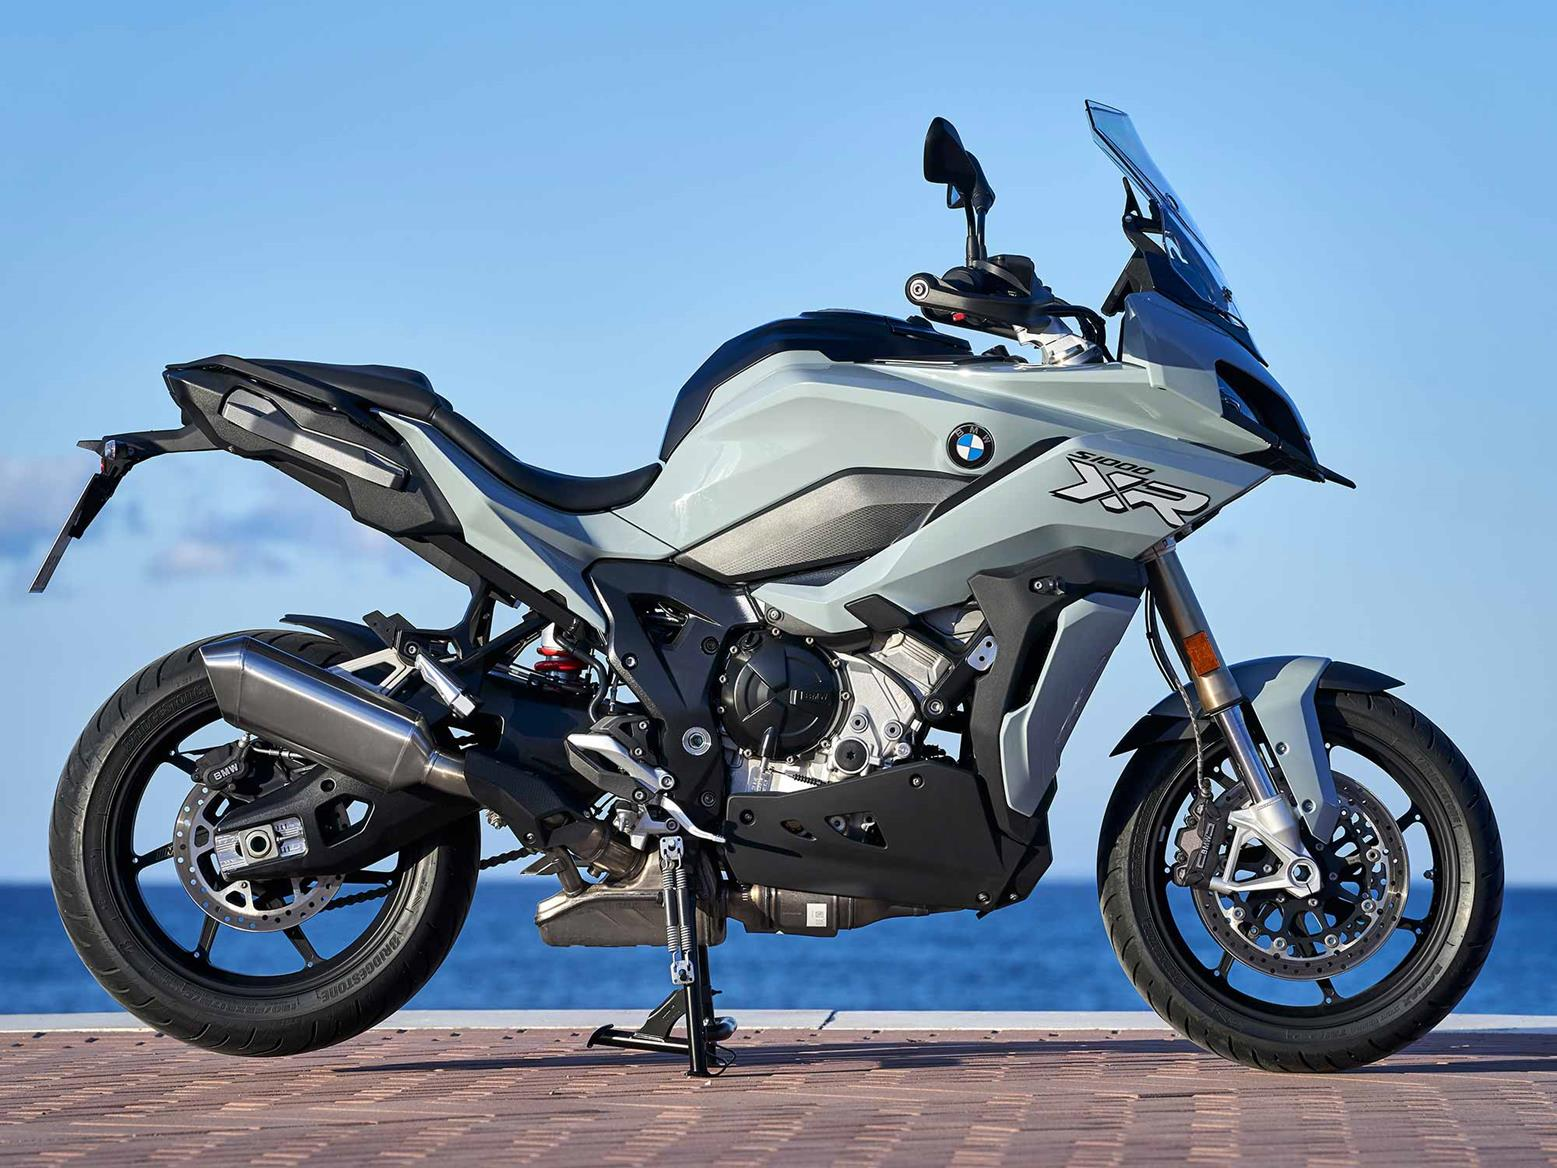 A side-on view of the BMW S1000XR